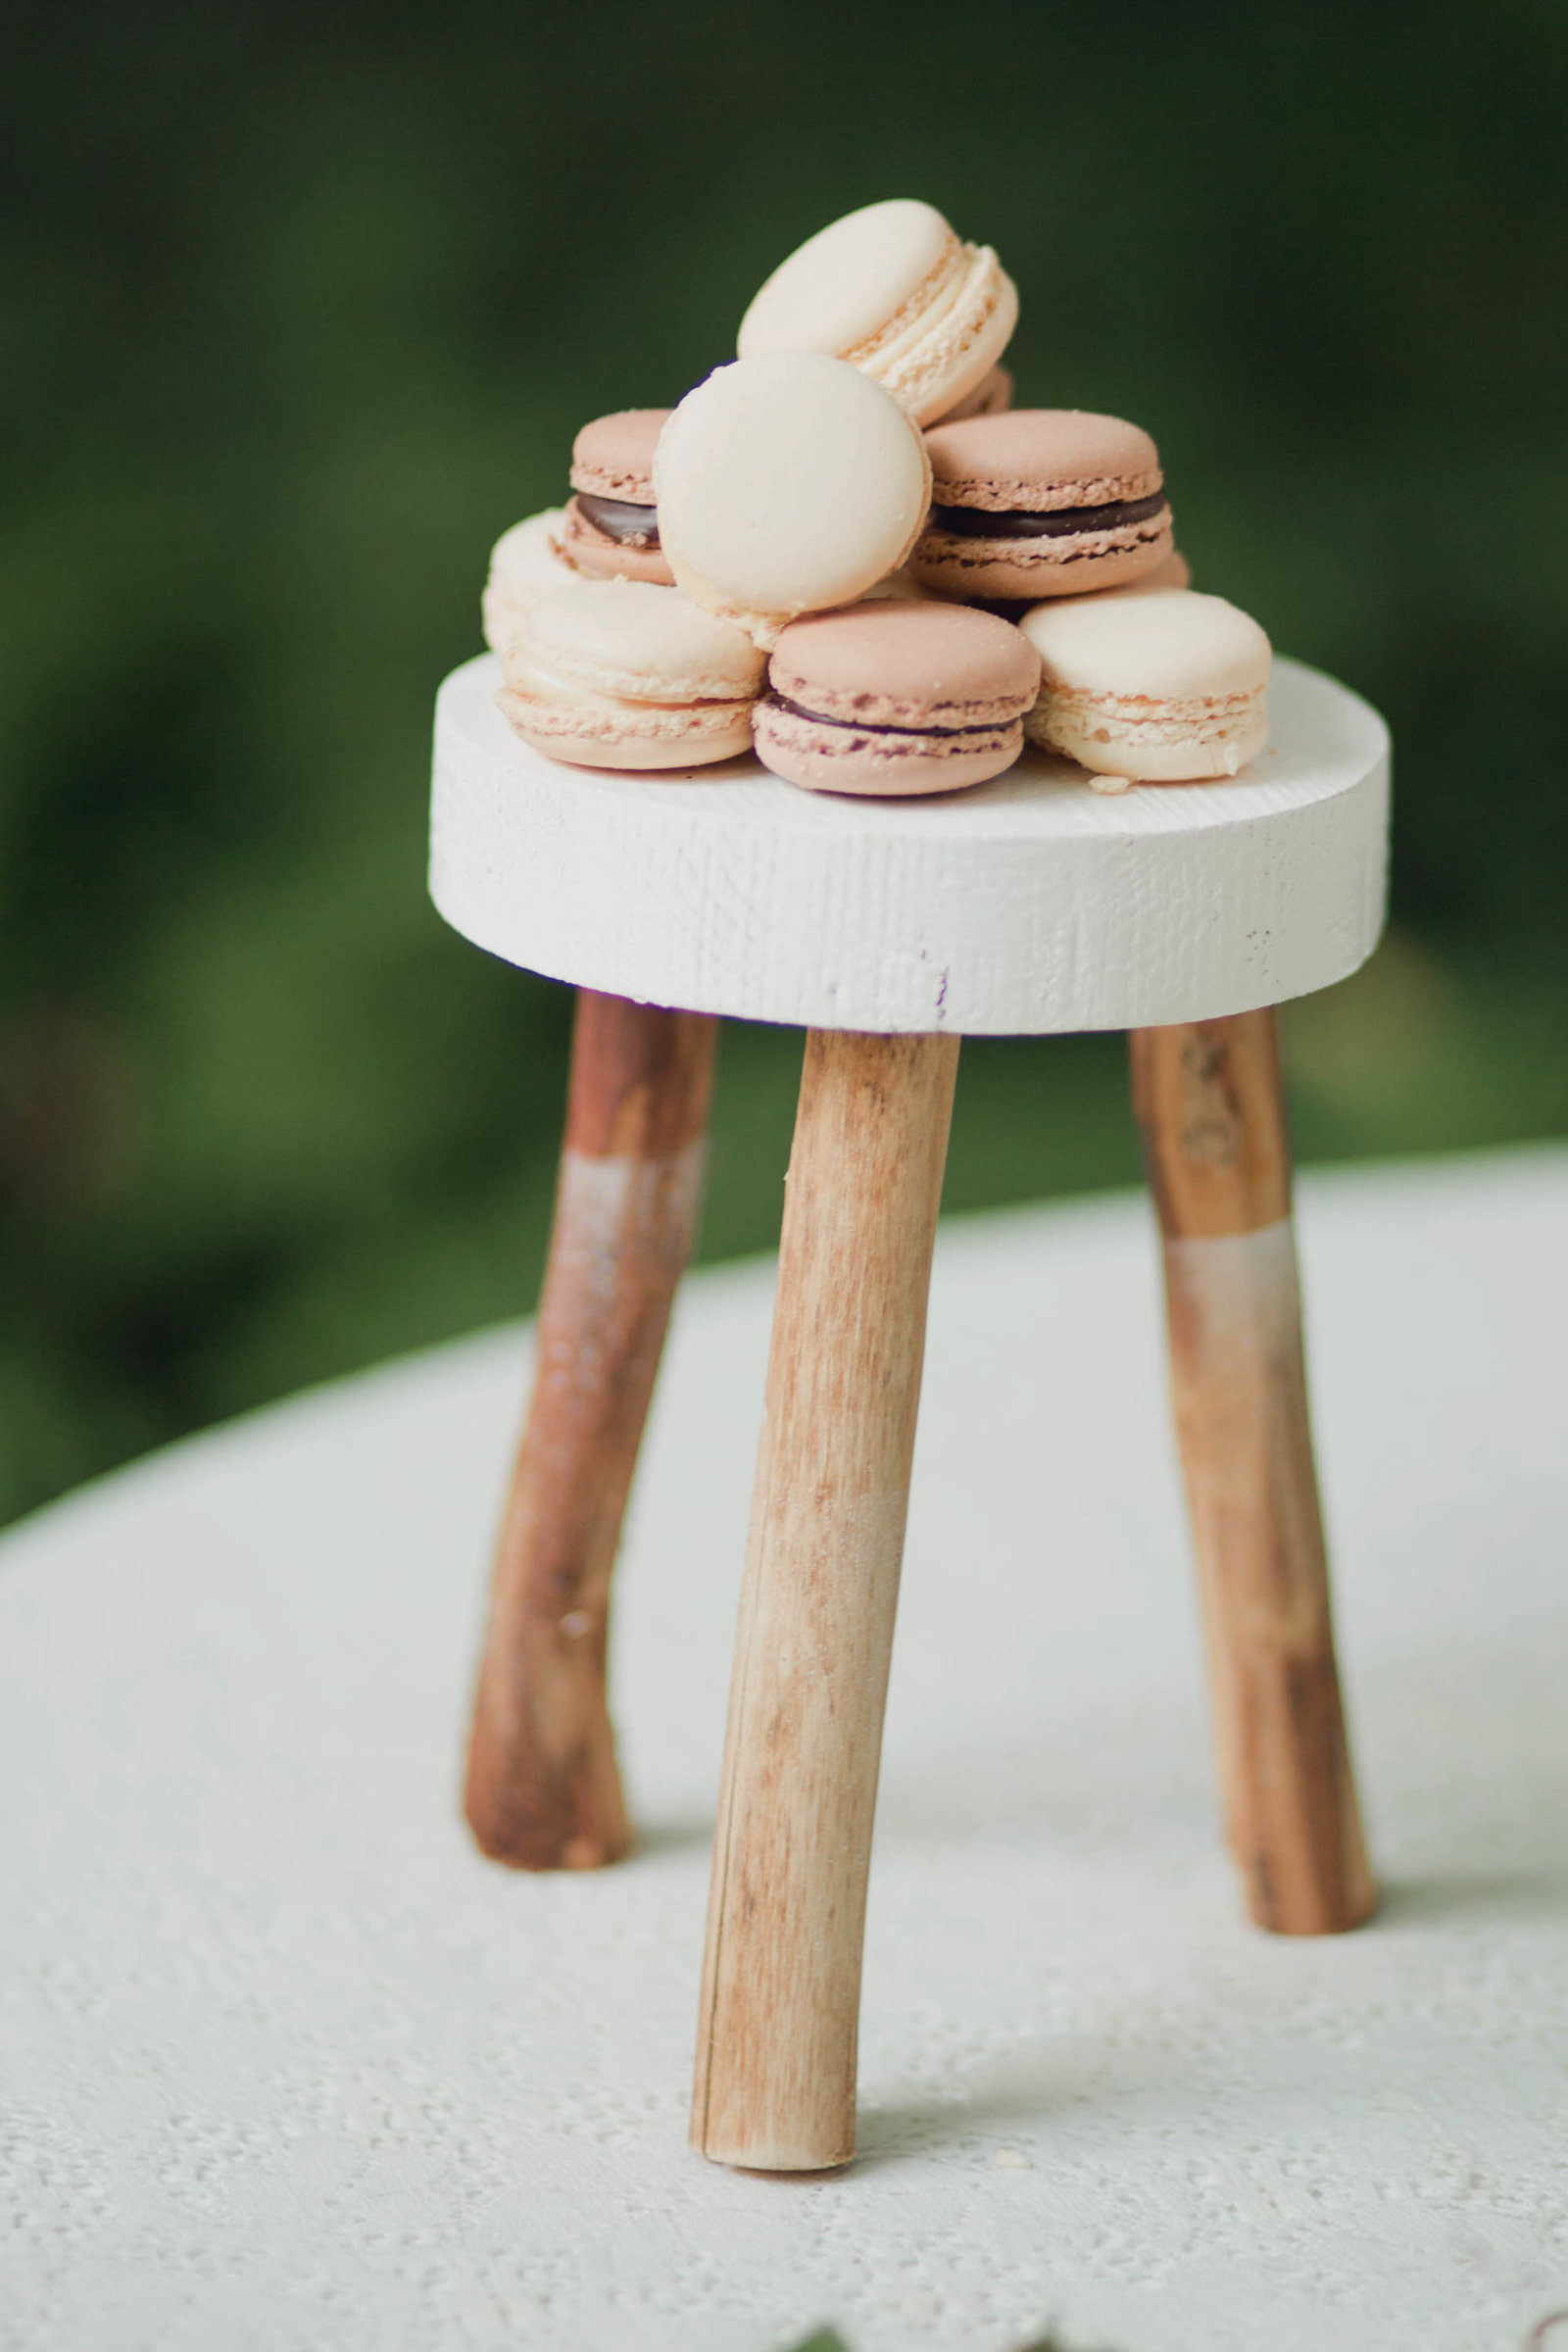 macaroon-renoir-farm-table-spring-bridal-lookbook-leann-marshall-editorial-wedding-chicks-published-old-mill-media-photography-papertree-studio-kate-timbers322